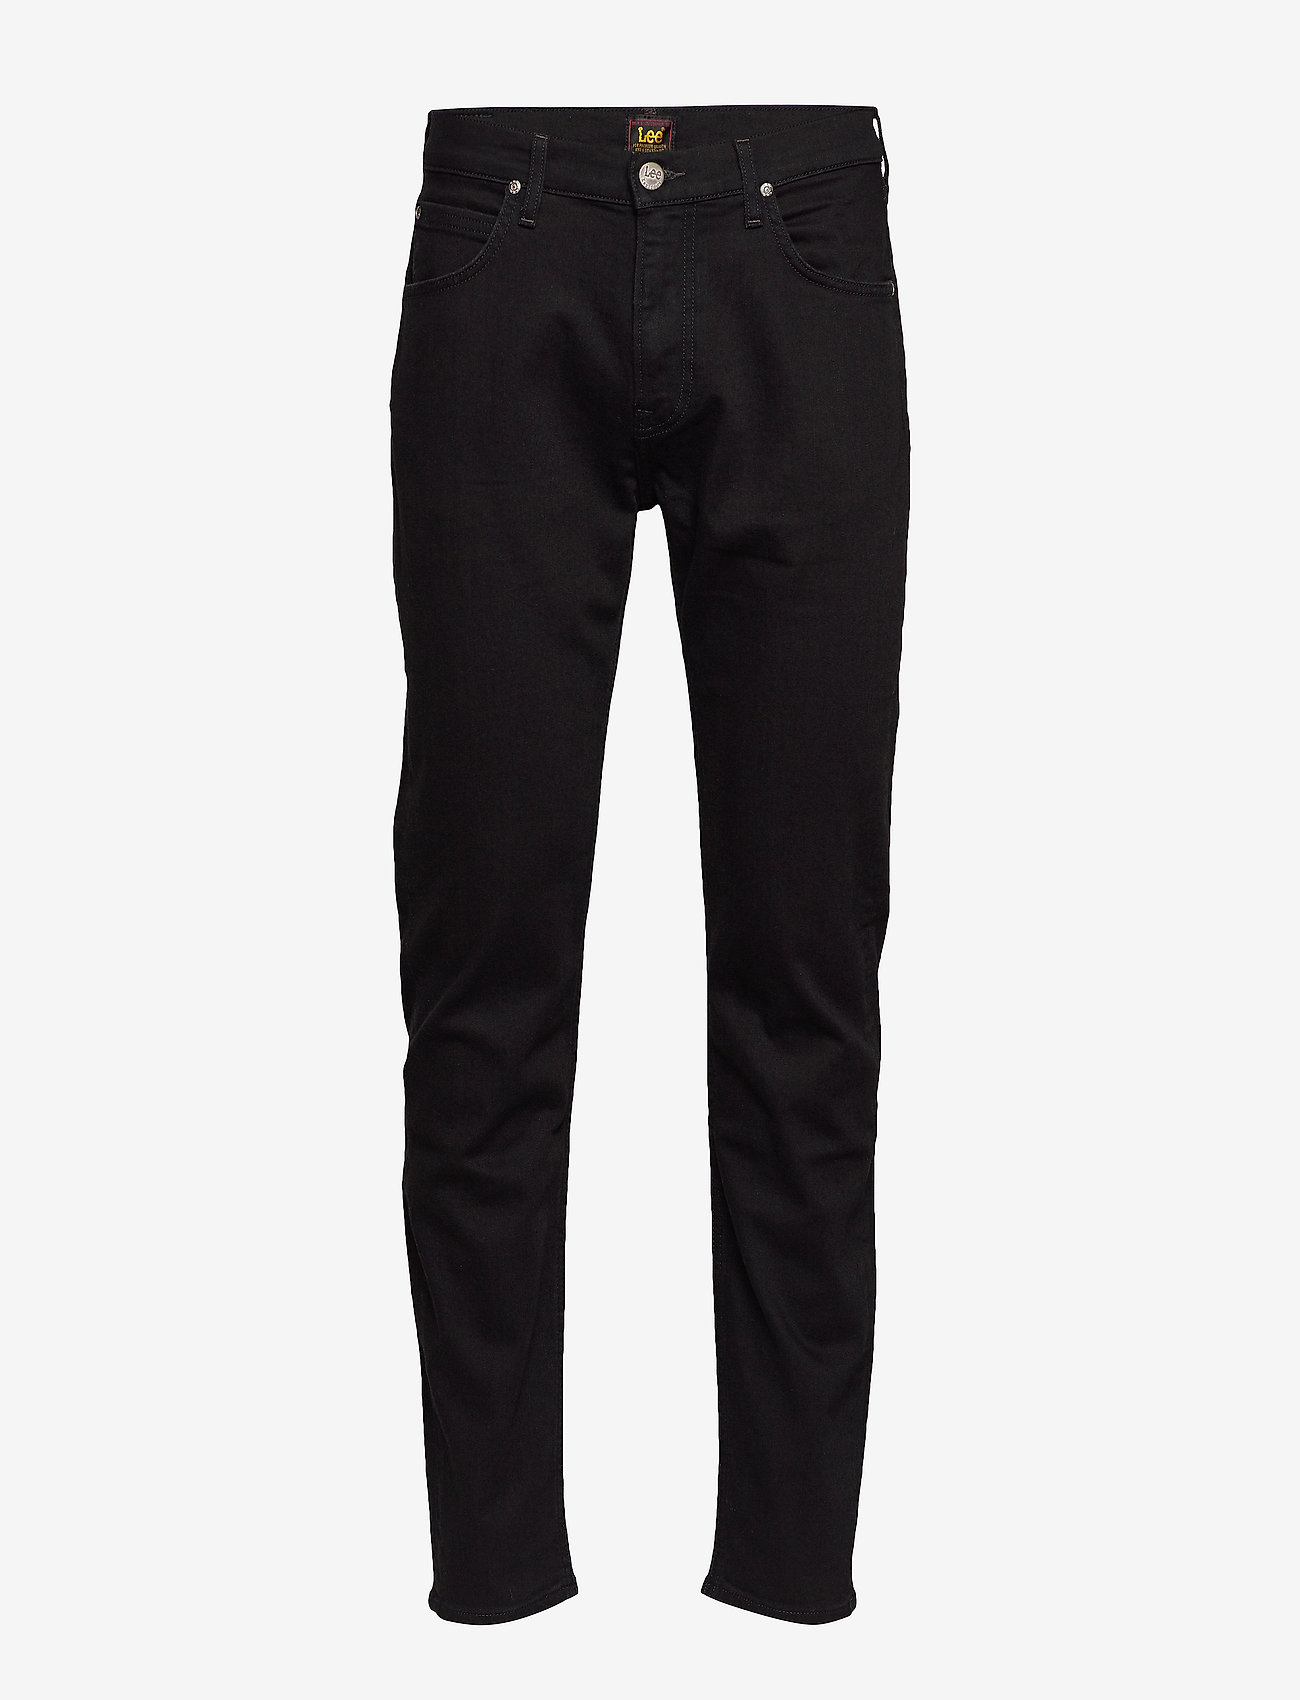 Lee Jeans - AUSTIN - regular jeans - clean black - 0